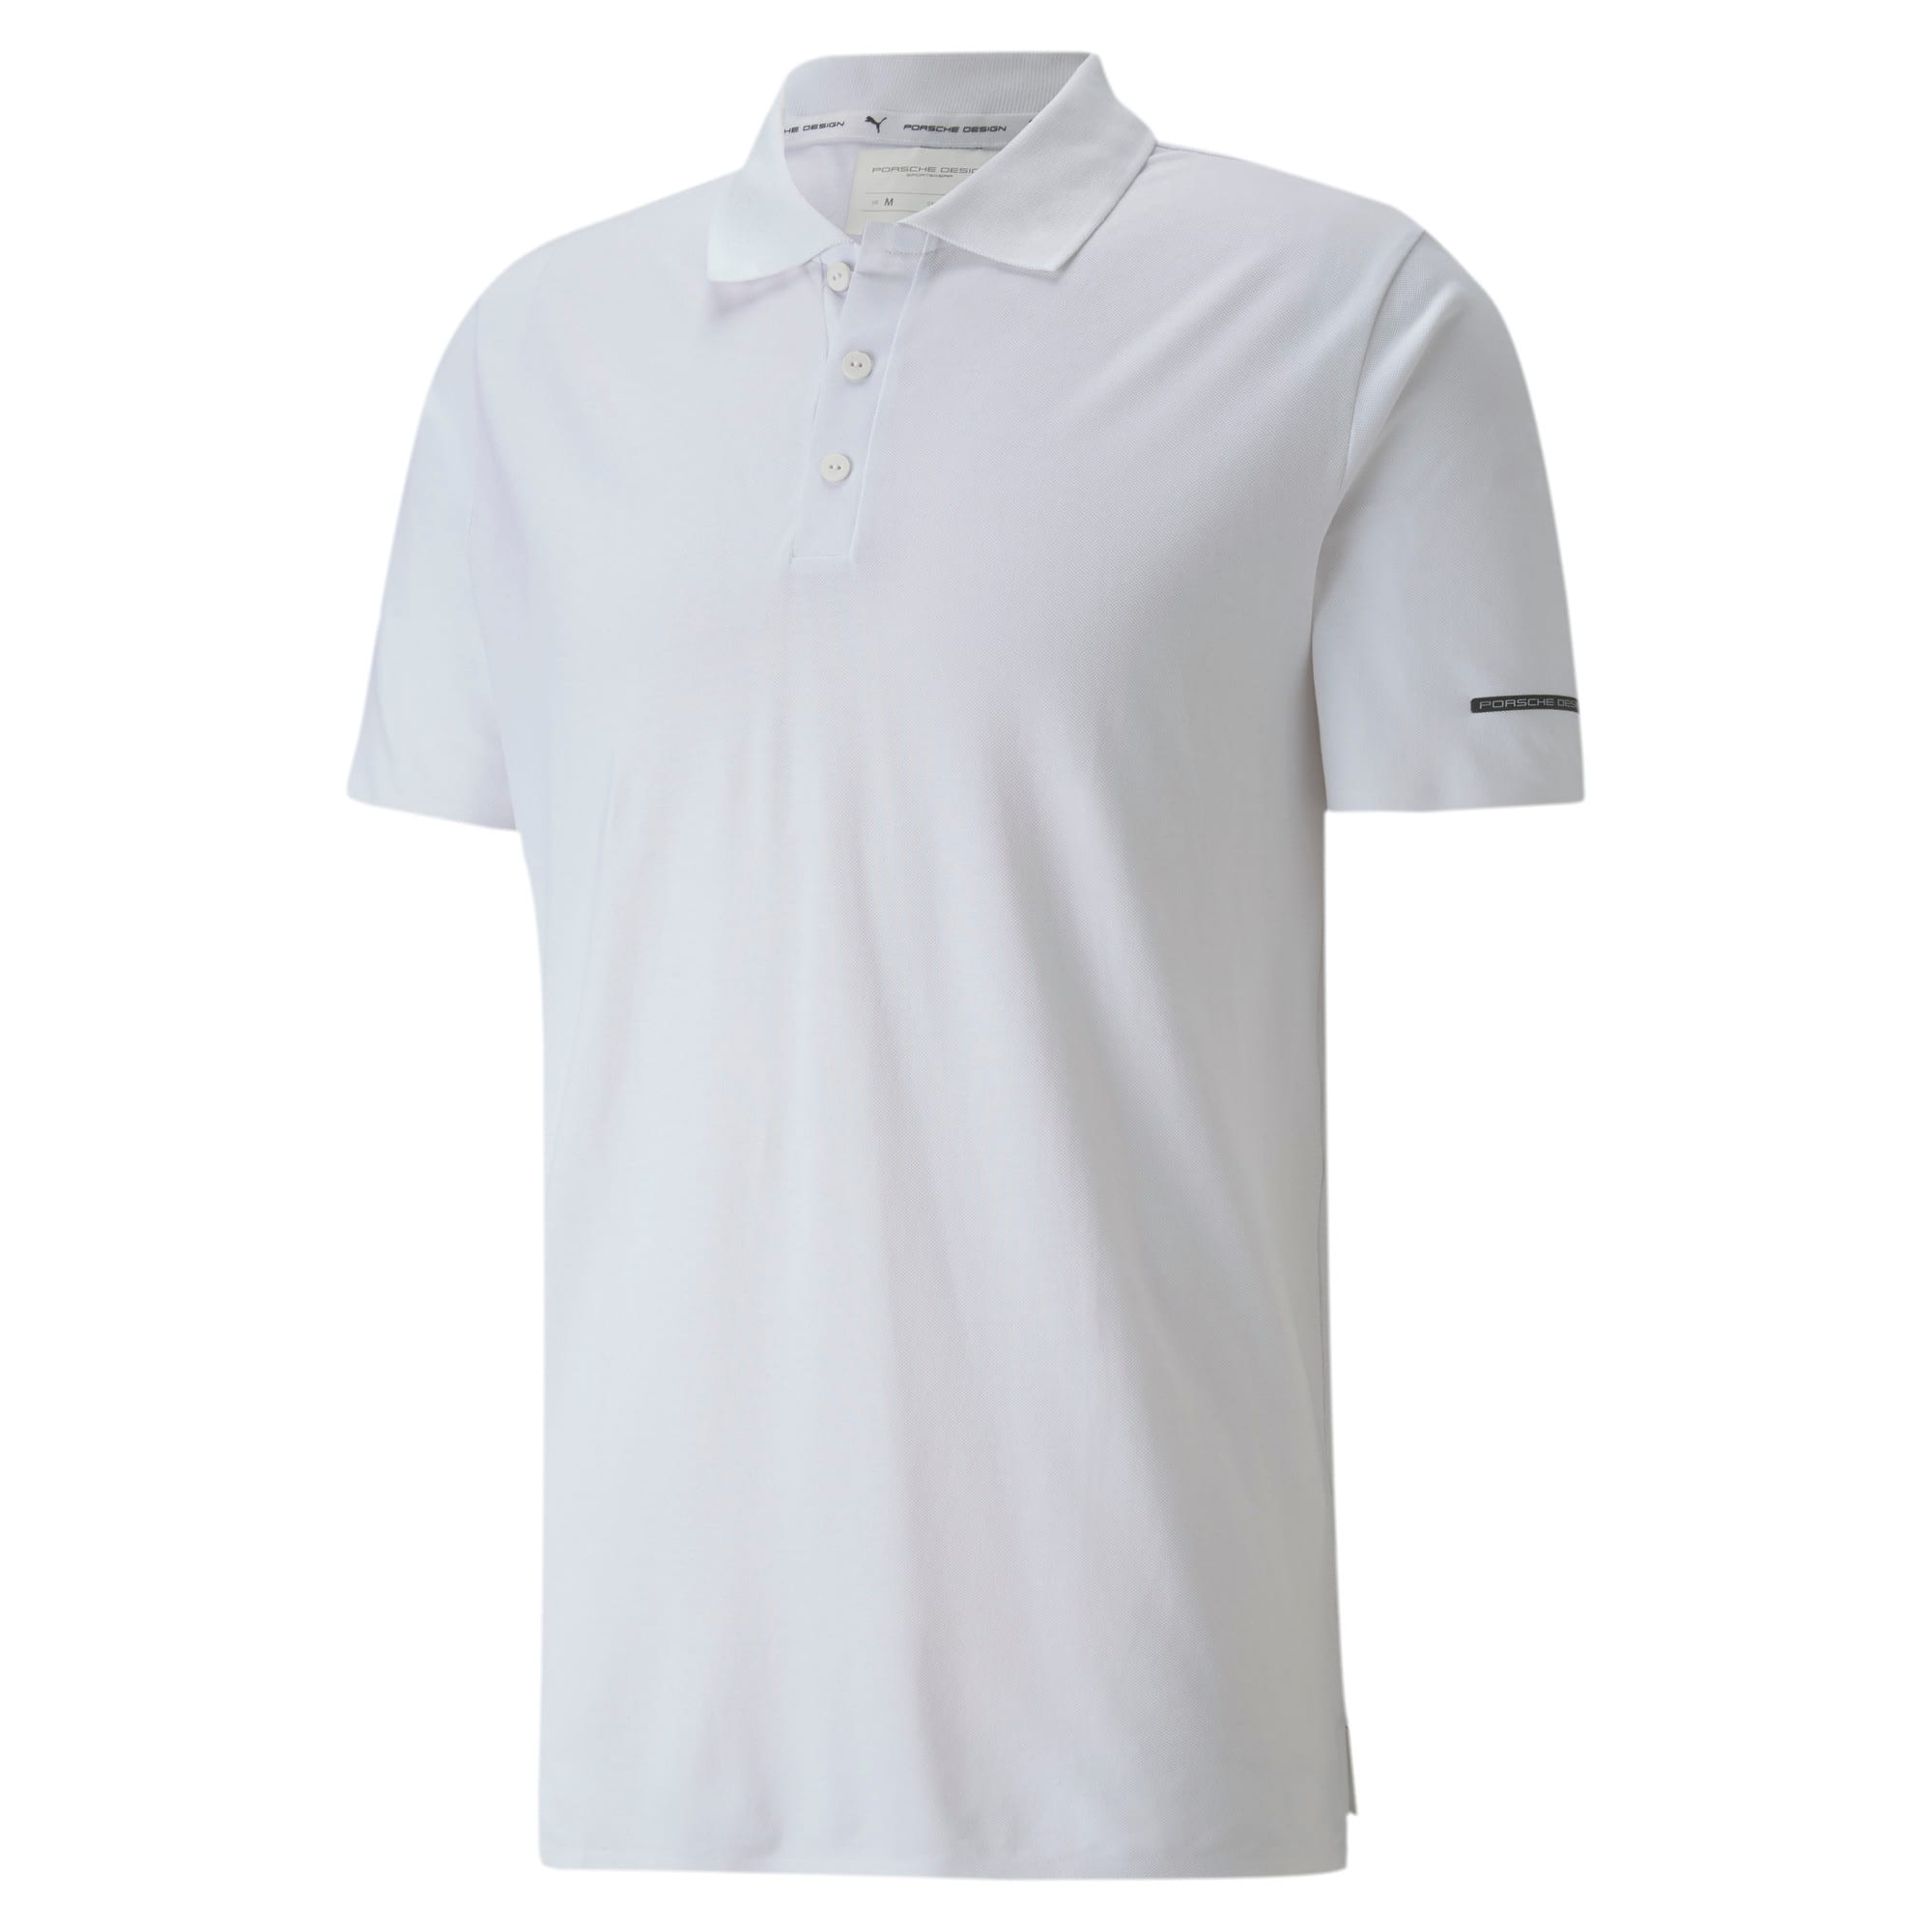 Thumbnail 4 of Porsche Design Herren Polo, Puma White, medium